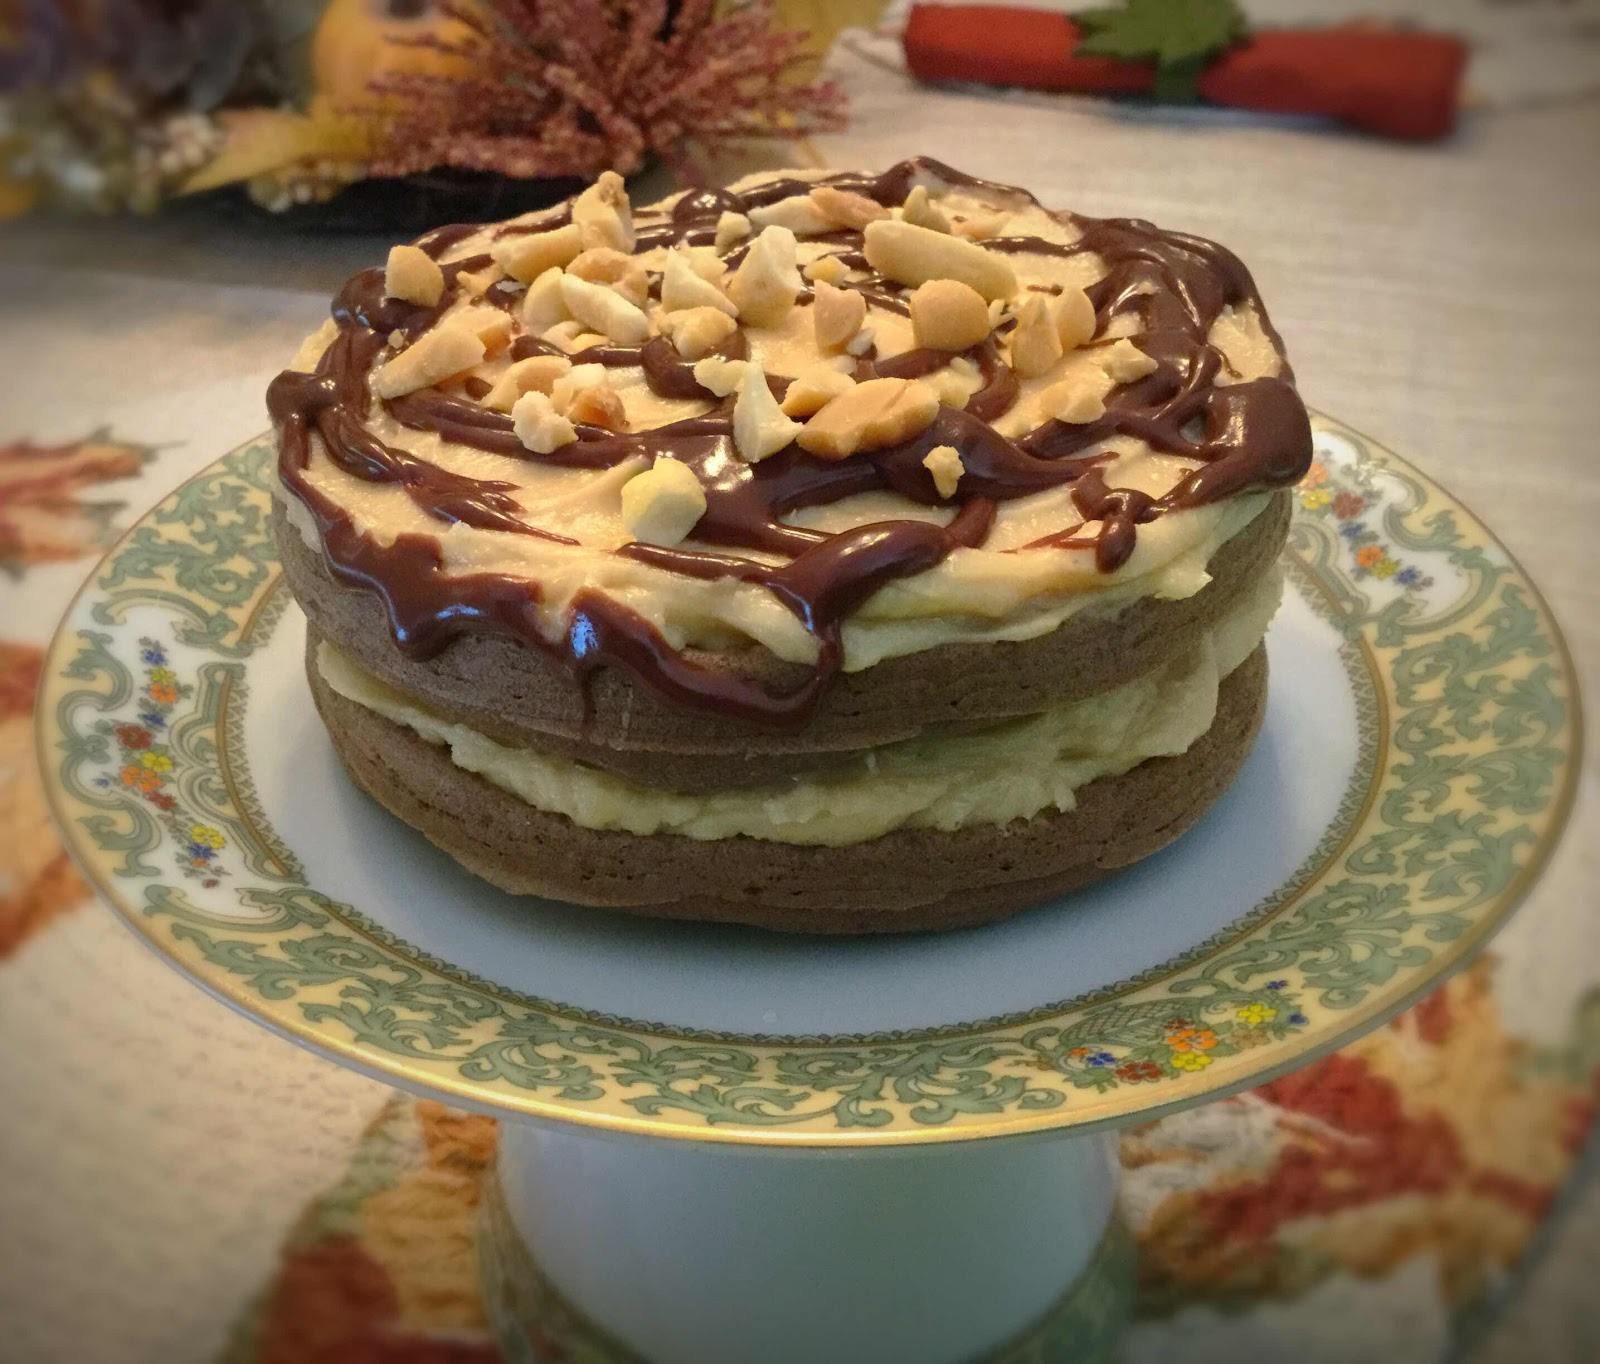 Chocolate Peanut Butter Chaffle Cake